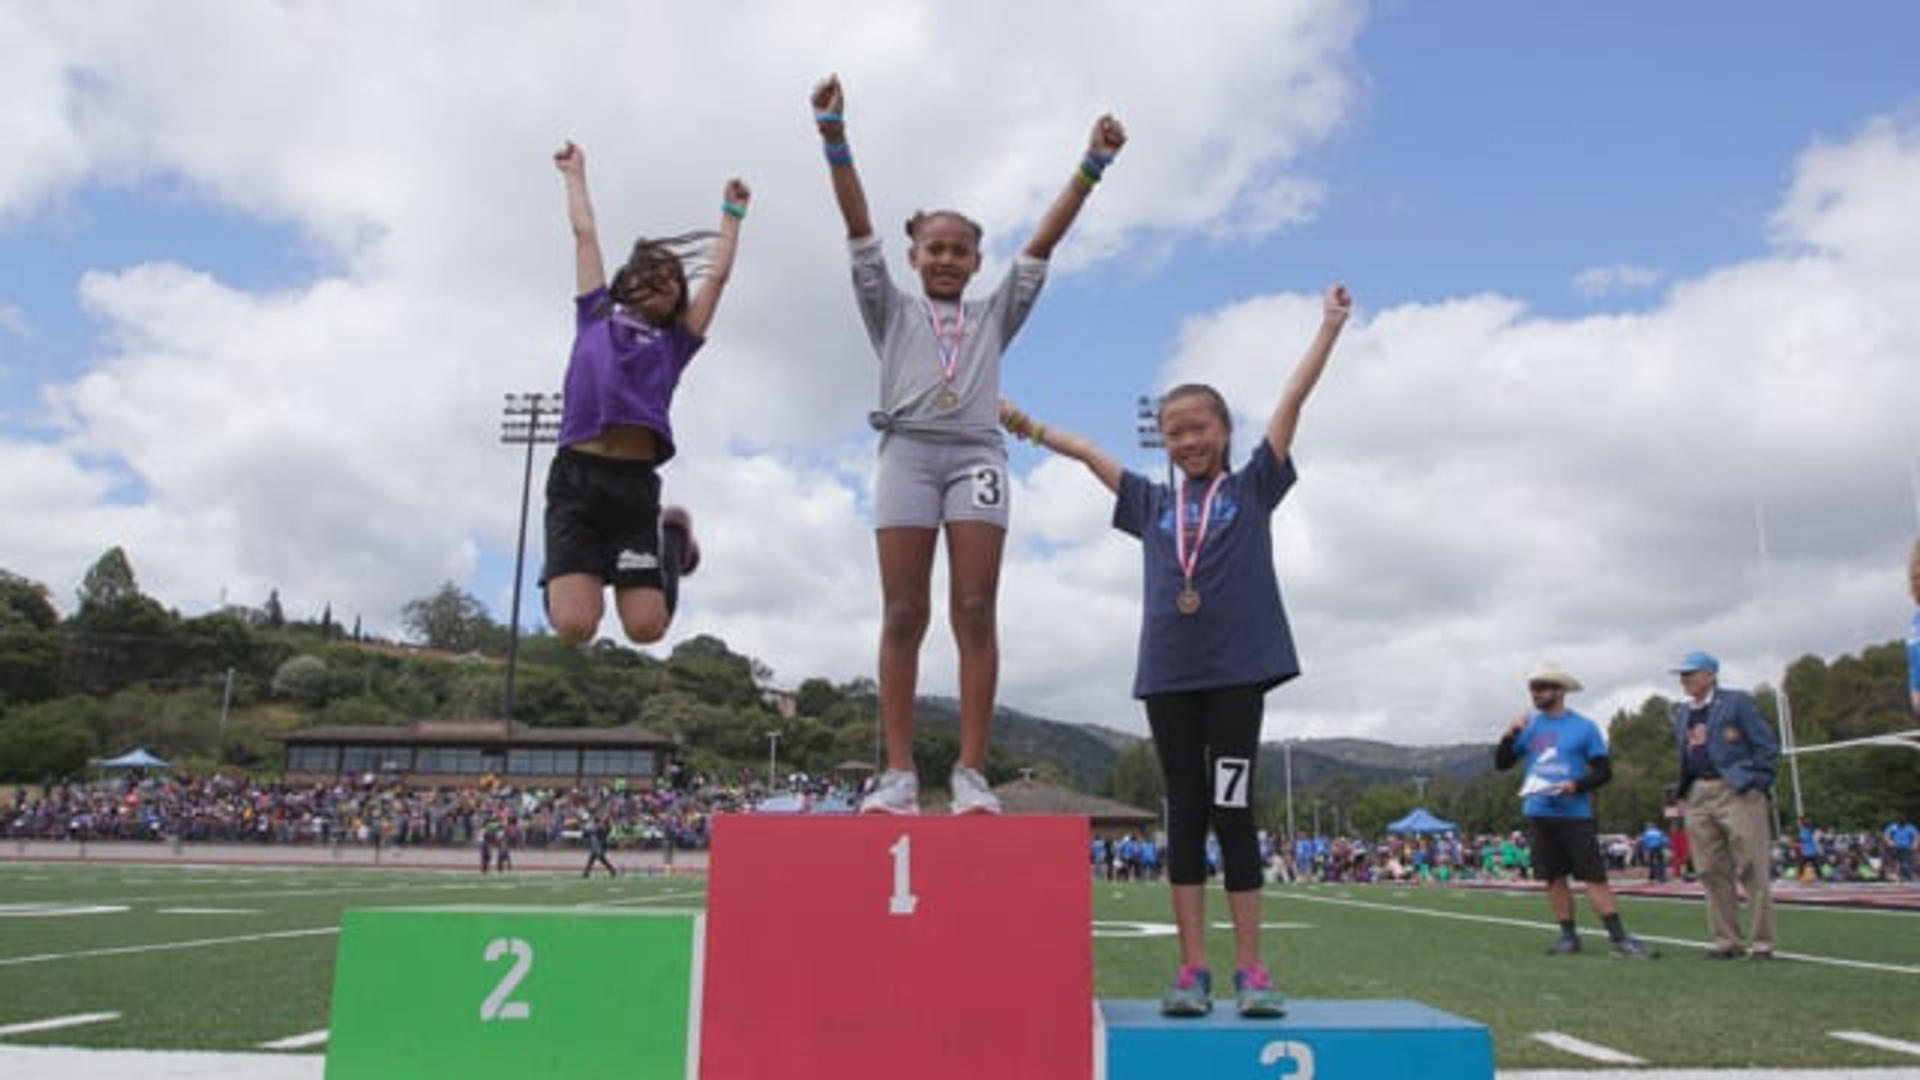 Bullis Charter School hosts a bi-annual Junior Olympics for K-8 charter school students and families from across Santa Clara County to celebrate education and community.